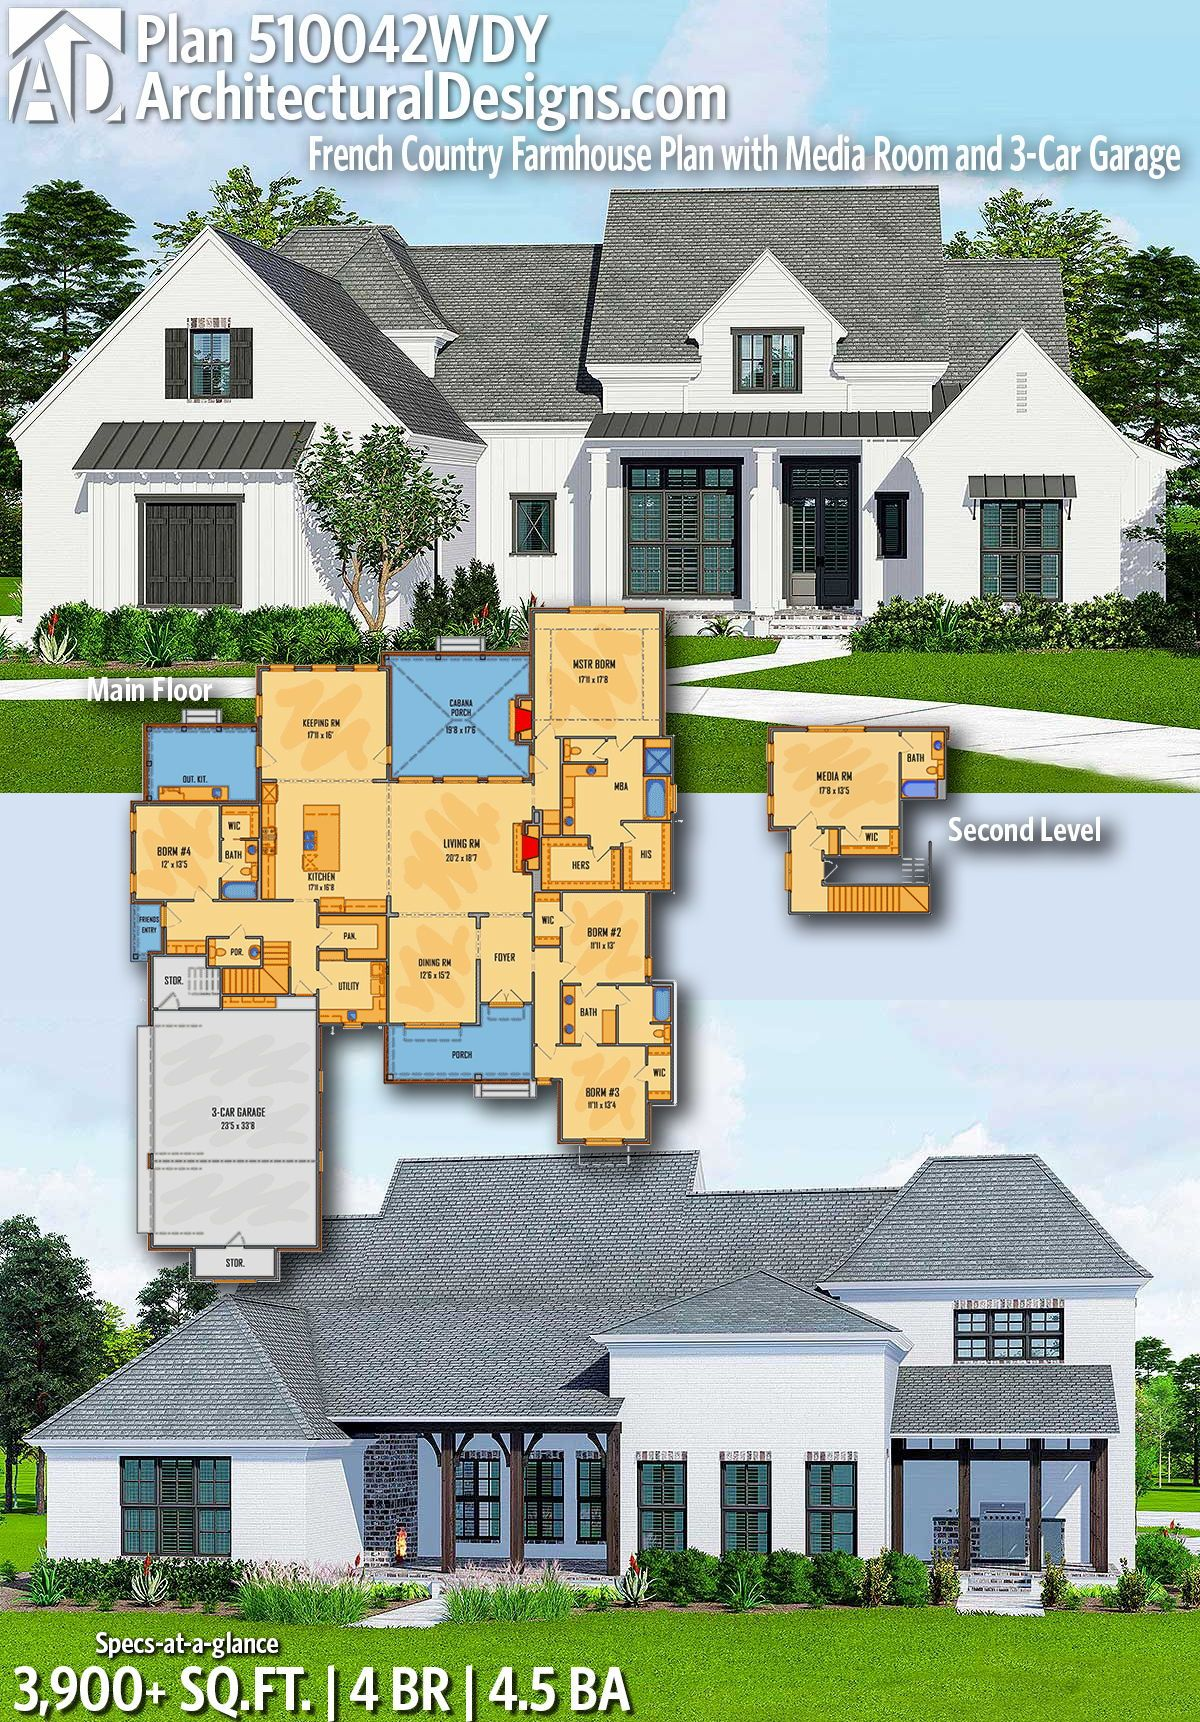 Plan 510042wdy French Country Farmhouse Plan With Media Room And 3 Car Garage Farmhouse Plans Modern House Plans Modern Farmhouse Plans